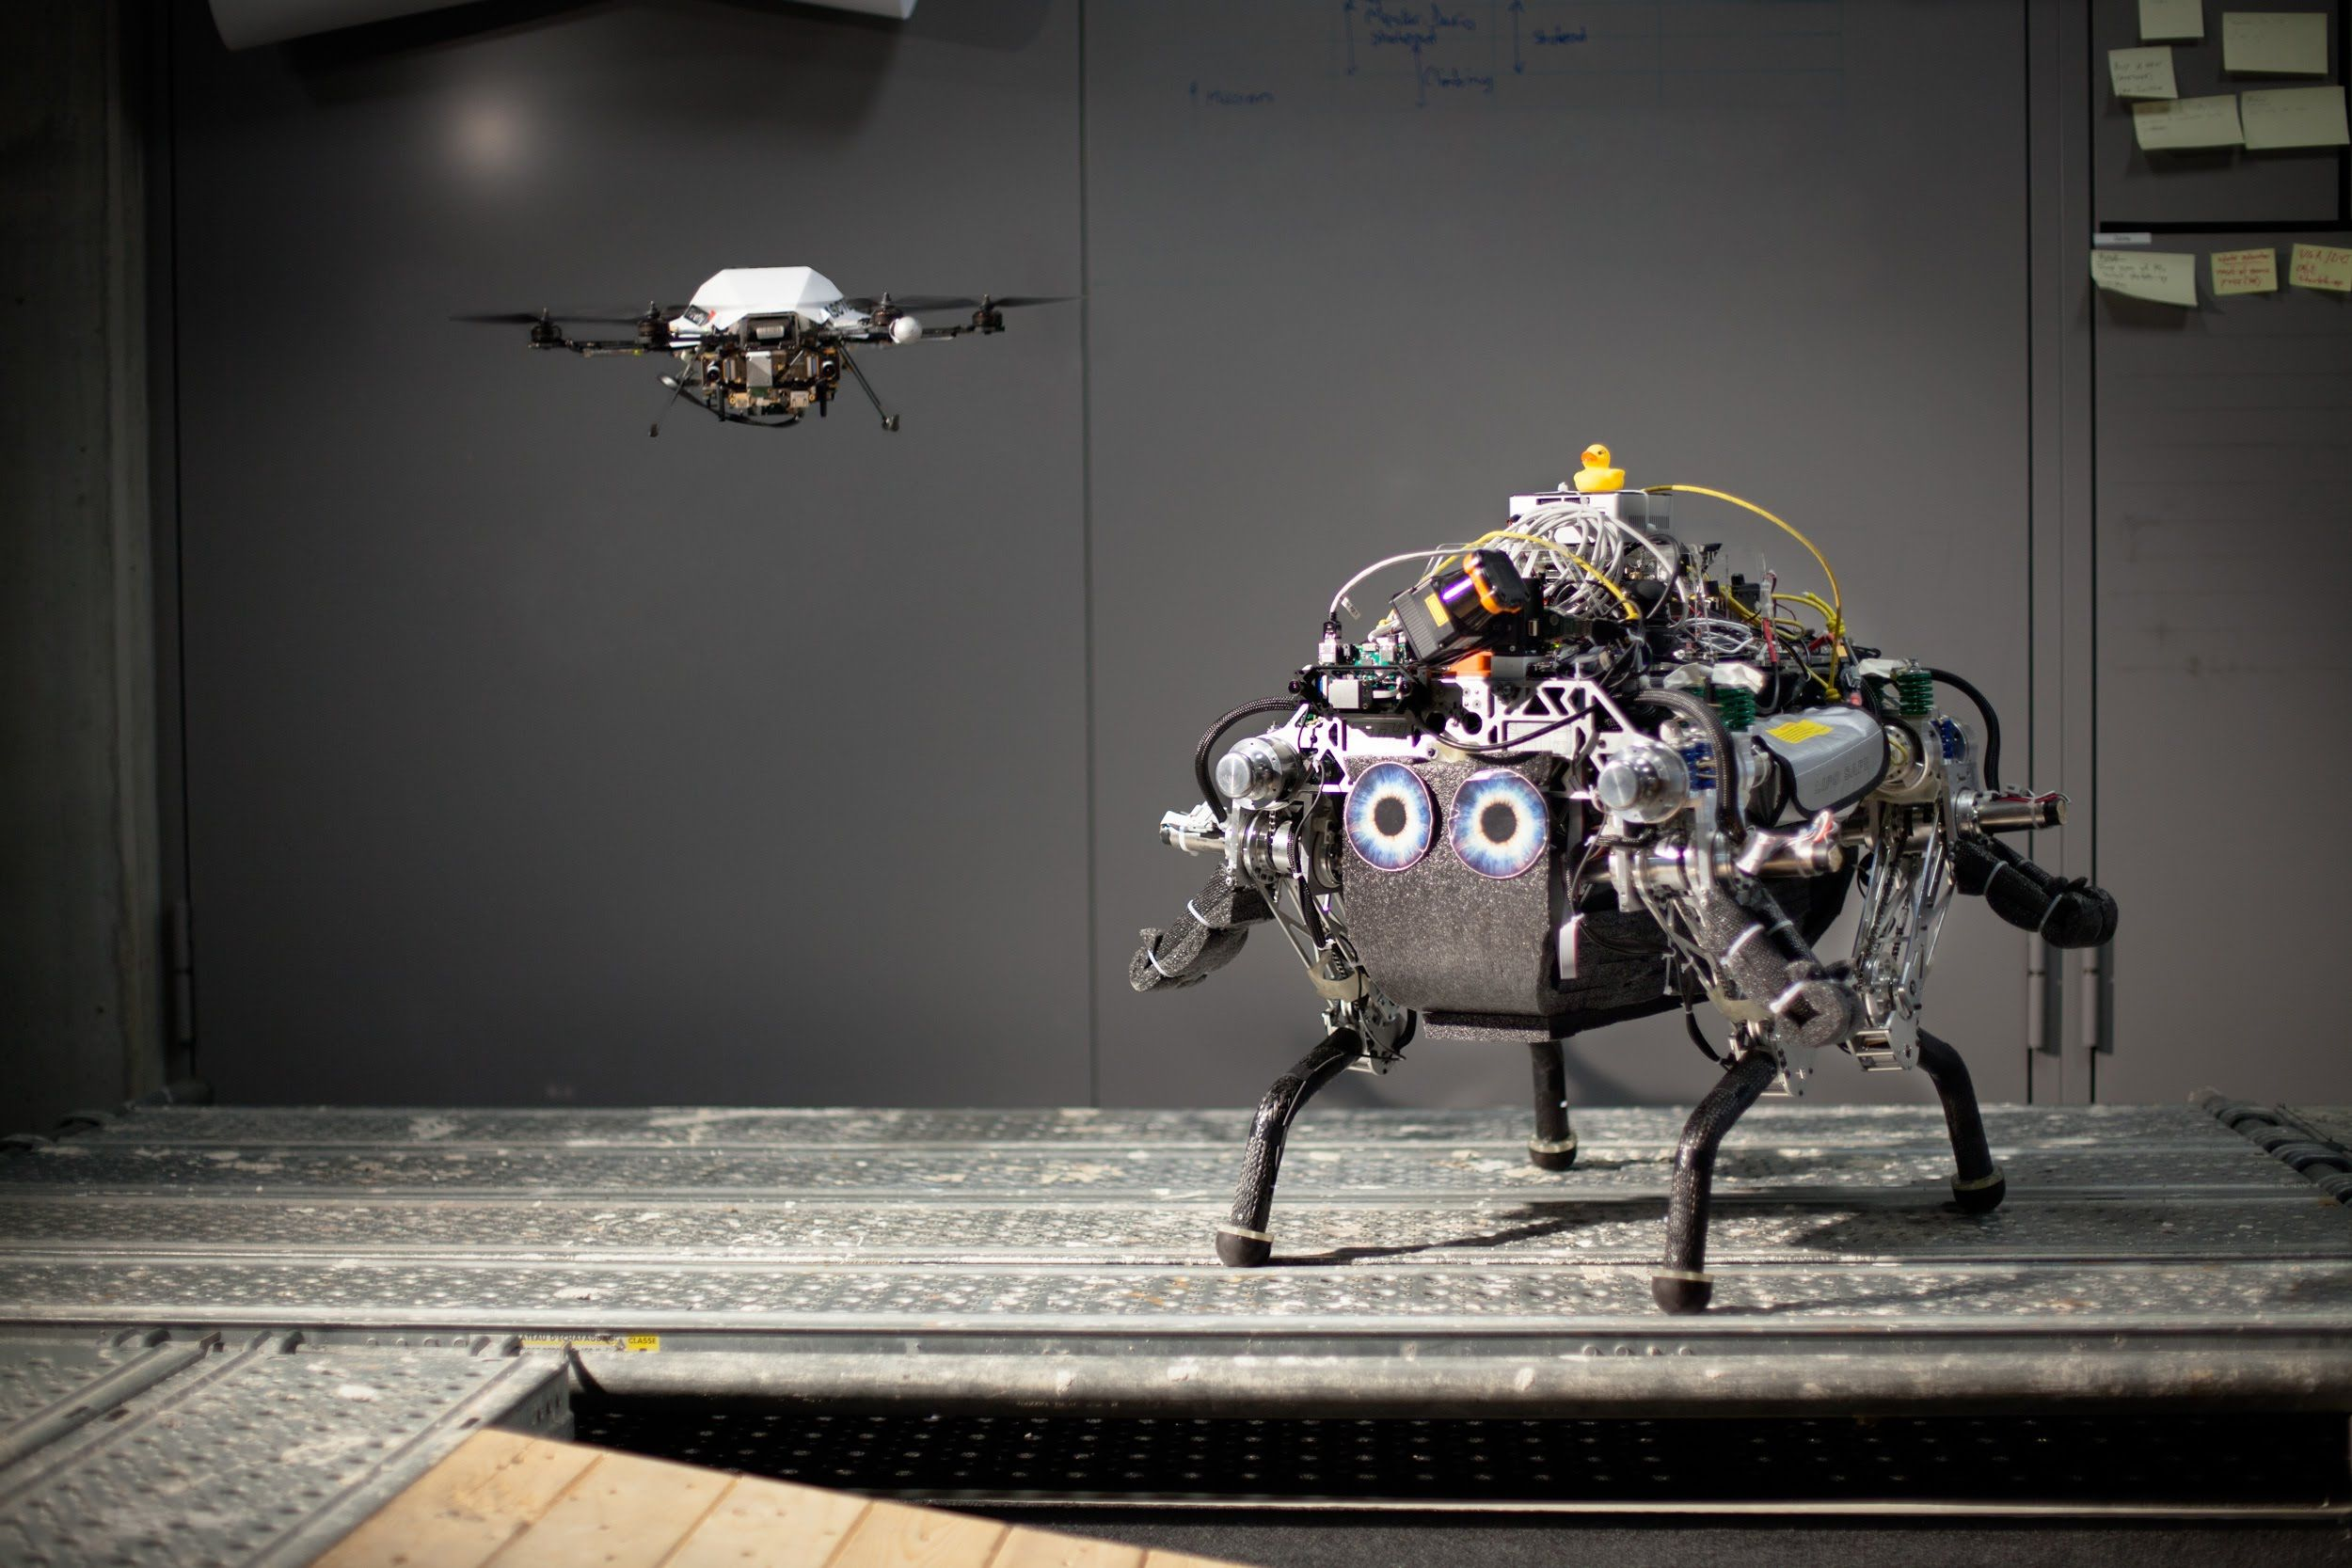 Walking Robot Uses Drone To Help Traverse Tricky Terrain Video